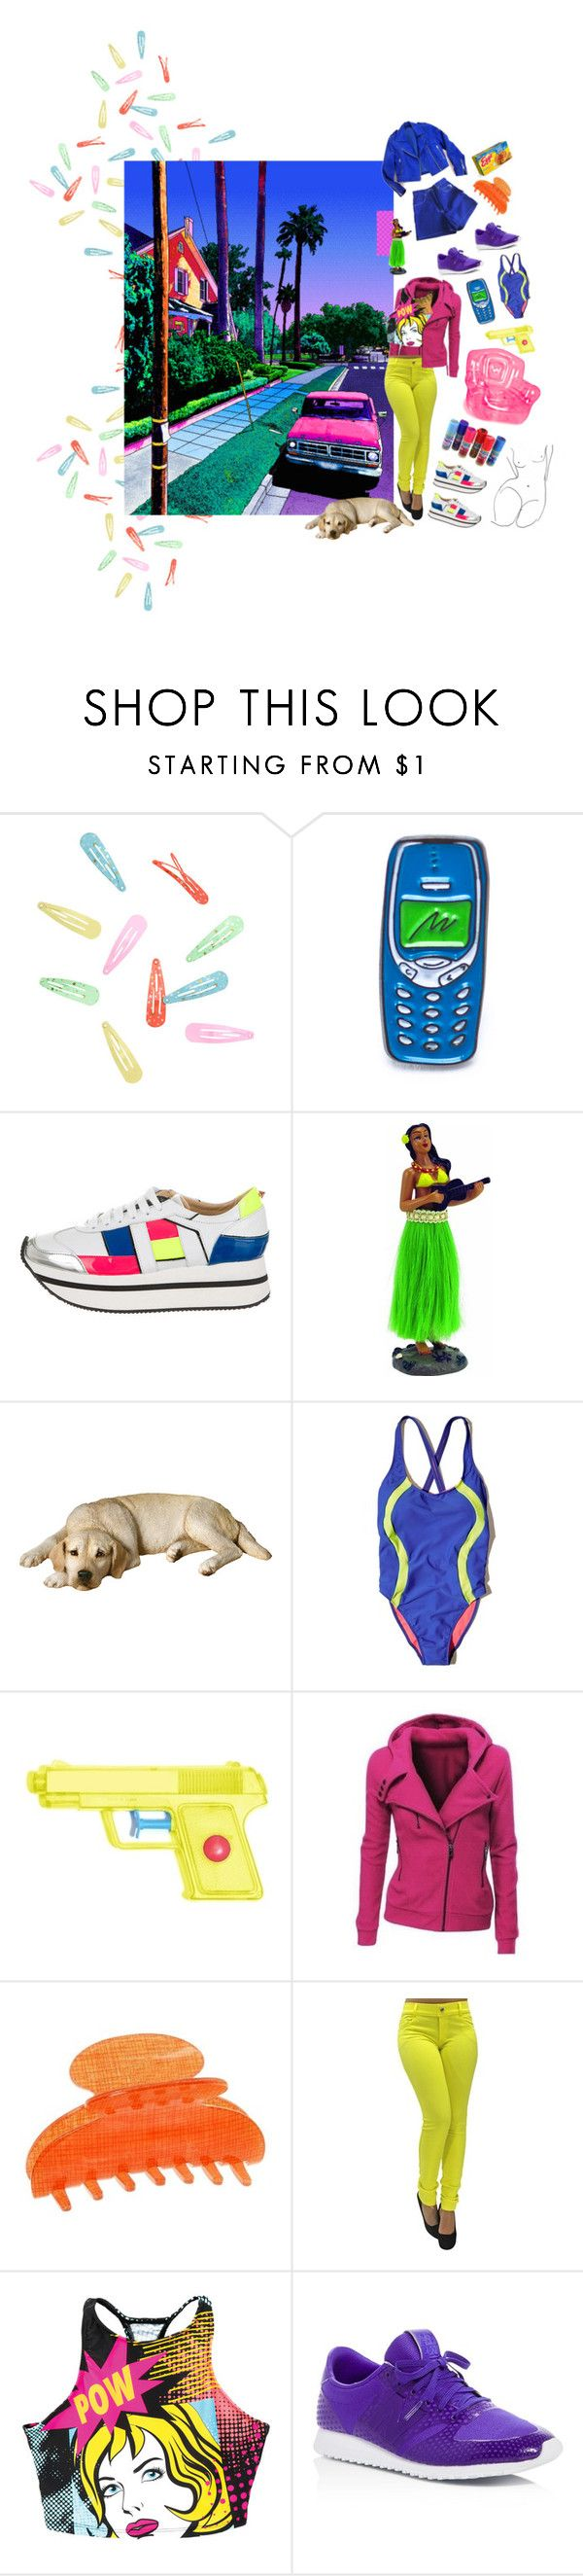 """lux"" by astral-leech ❤ liked on Polyvore featuring Laser Kitten, Ruthie Davis, Sandicast, Hollister Co., WithChic, France Luxe and New Balance"